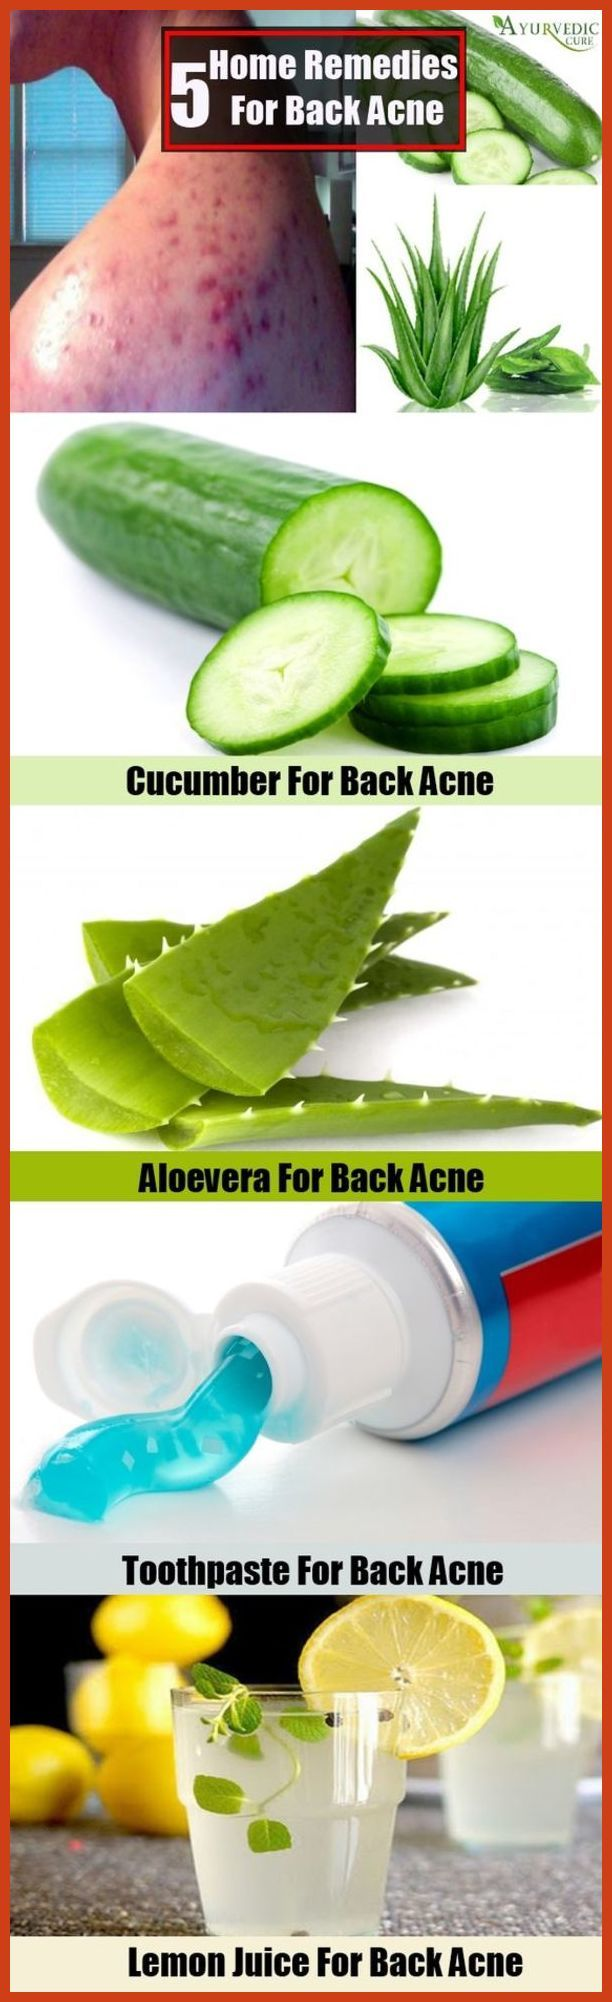 Home Remedies for Acne Overnight - Acne Cures That Are Found in the Kitchen ** More details can be found by clicking on the image. #HomemadeAcneRemedies